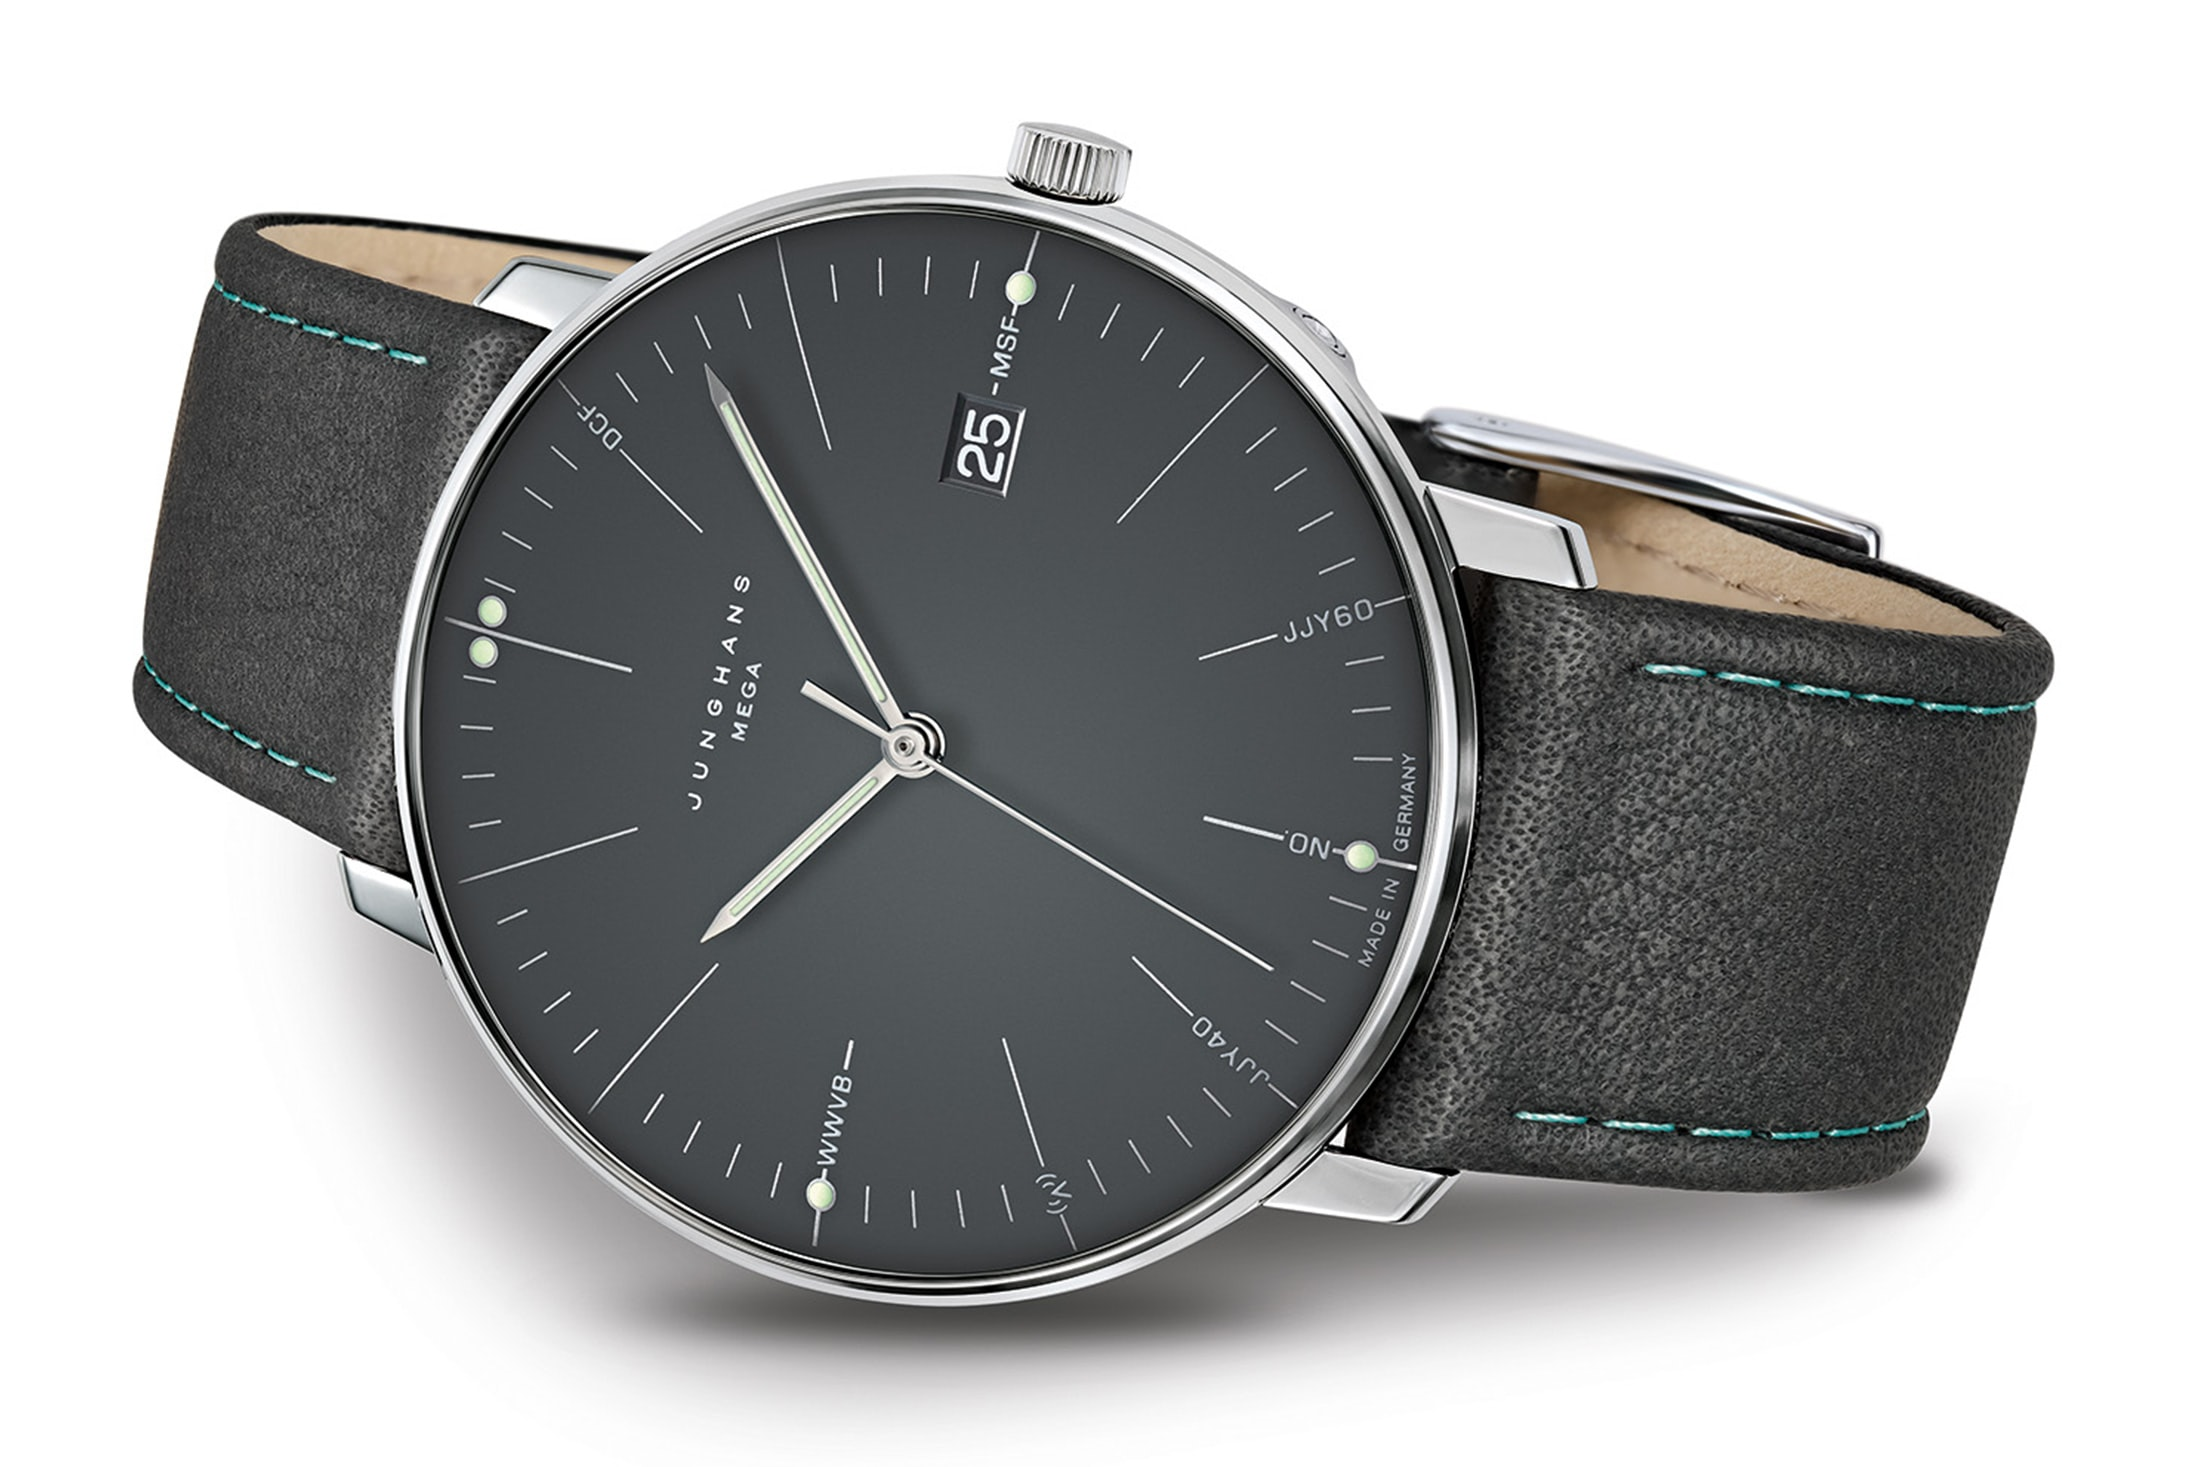 Introducing: The Junghans Max Bill Mega junghans max bill mega 3